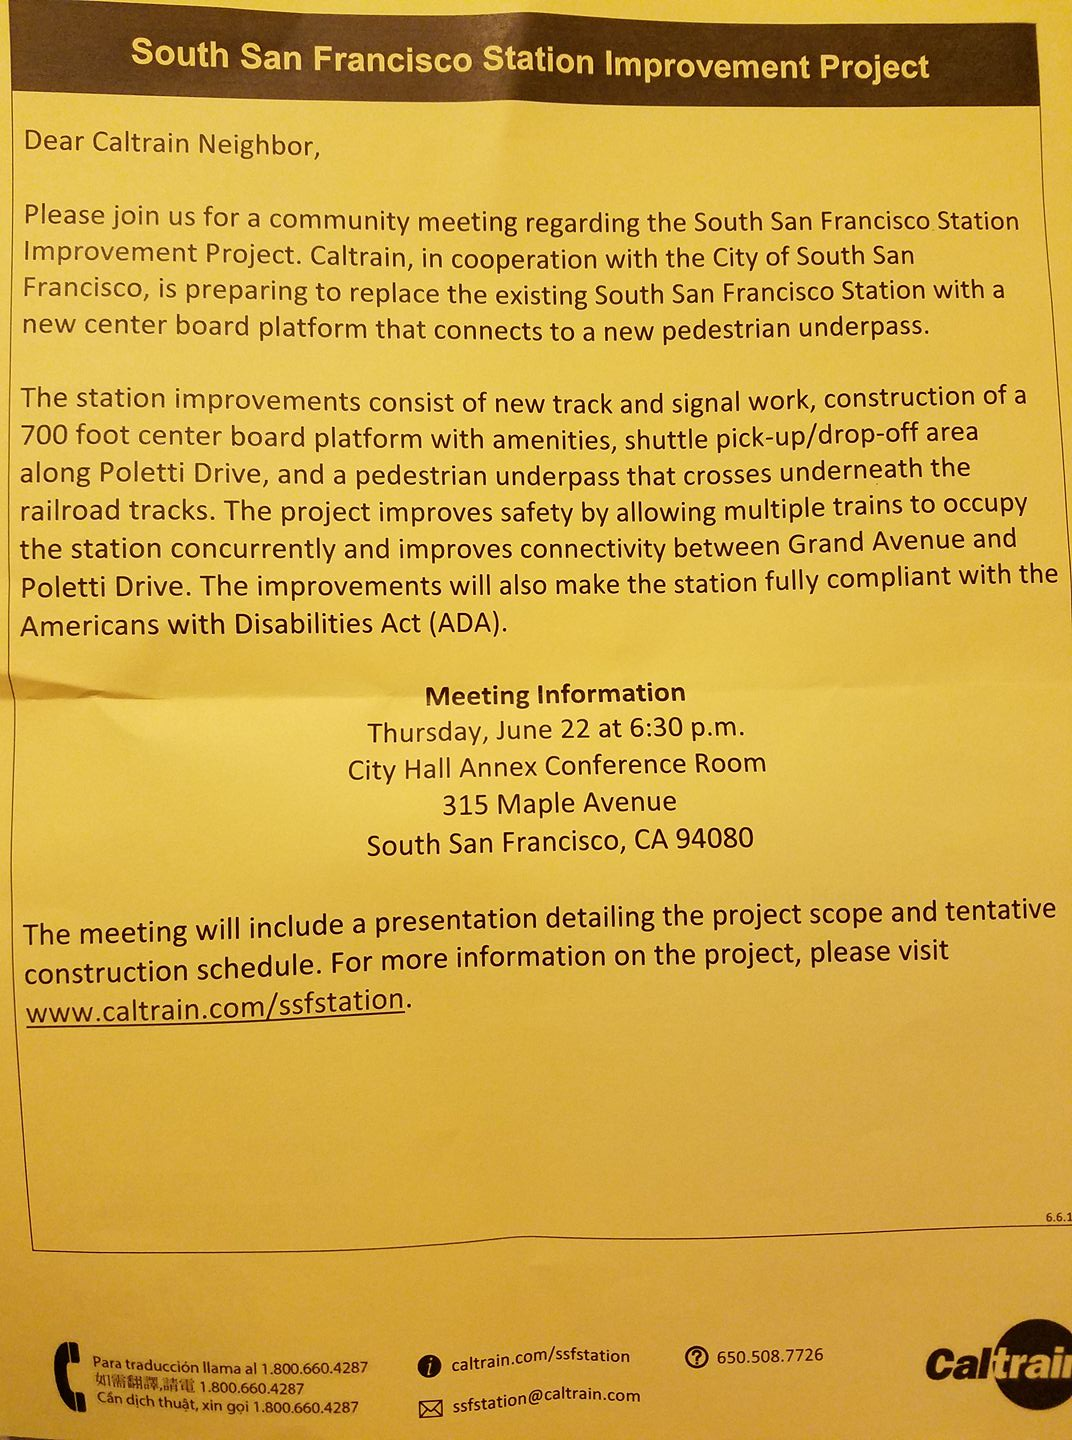 Caltrain to Hold Community Meeting on South San Francisco Station Improvement Project